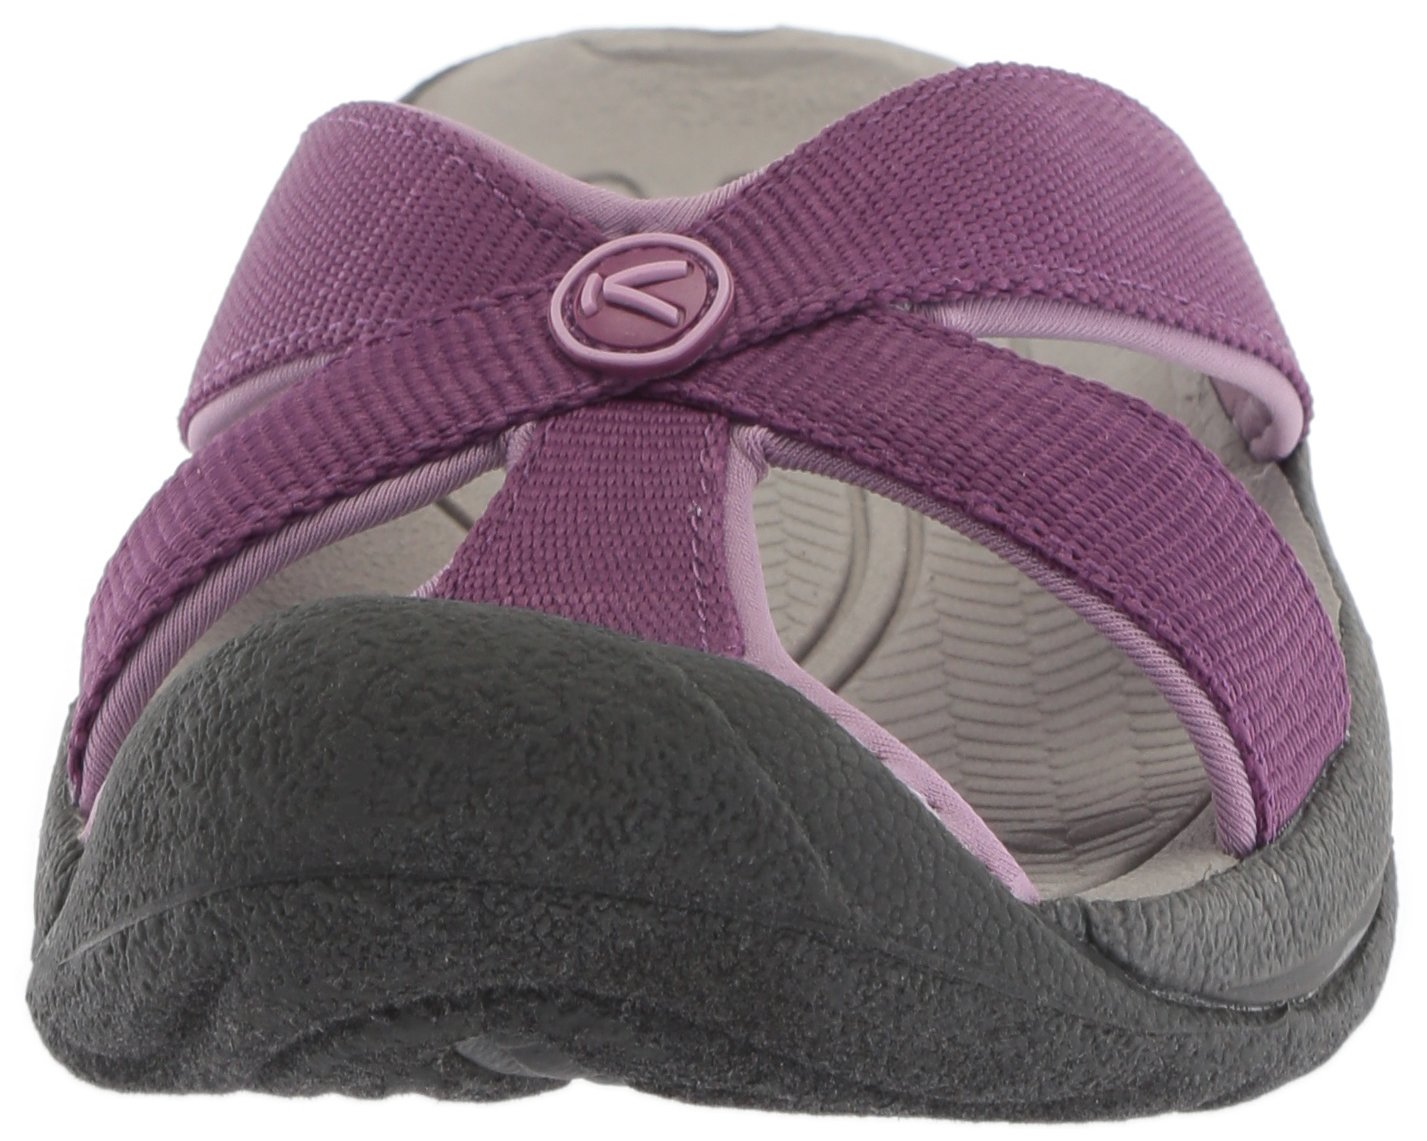 KEEN Women's B(M) Bali Sandals B072278N1D 9 B(M) Women's US|Grape Kiss/Lavendar Herb c50a58